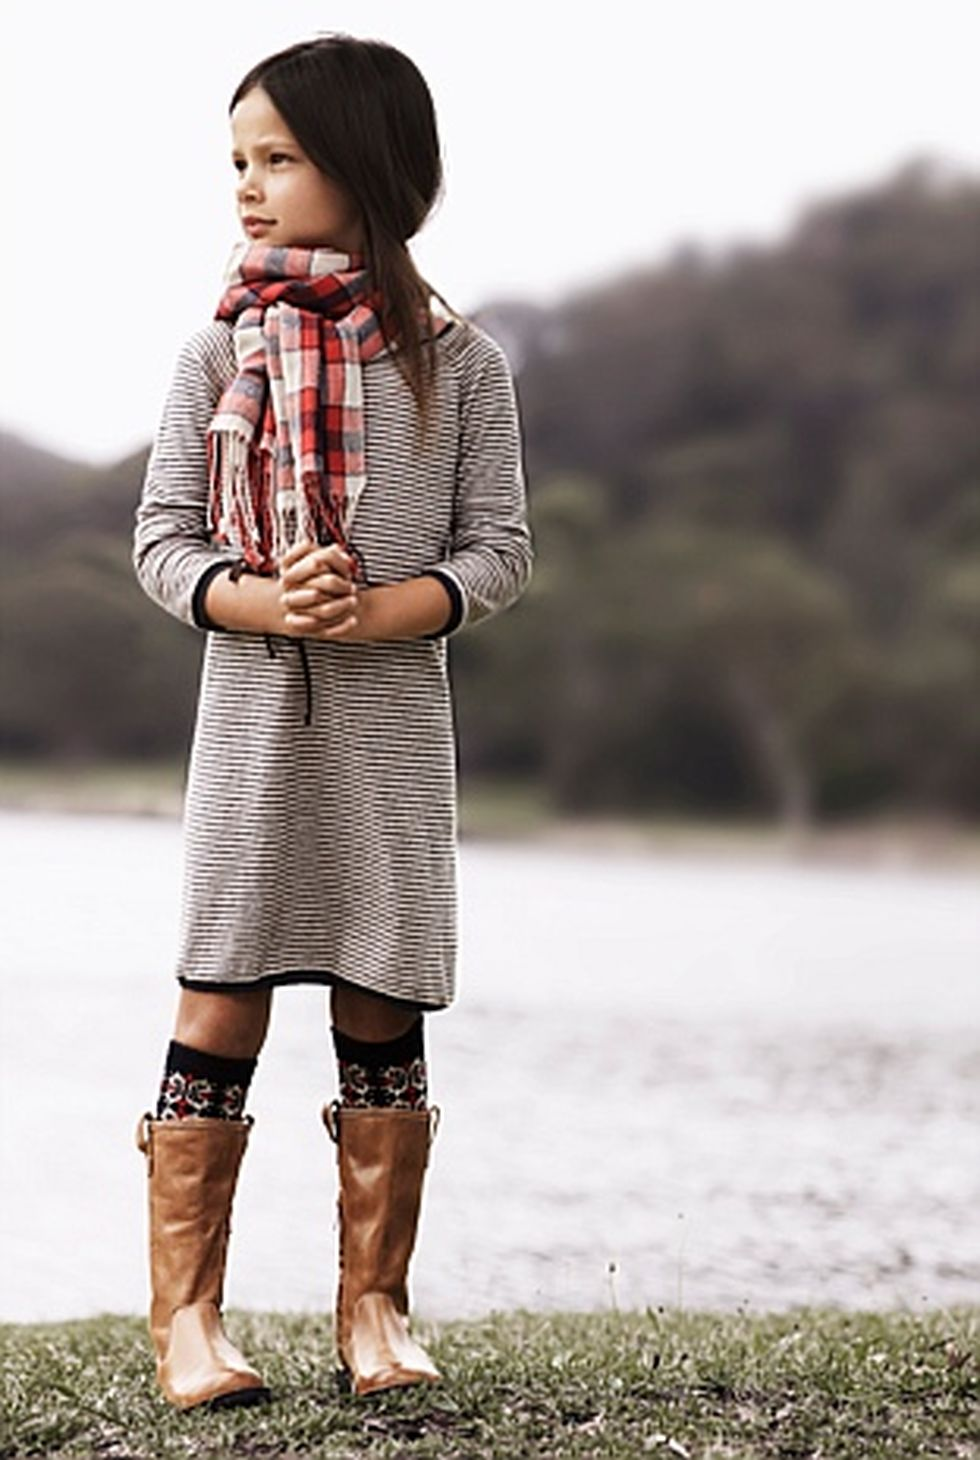 Cute kids fashions outfits for fall and winter 53